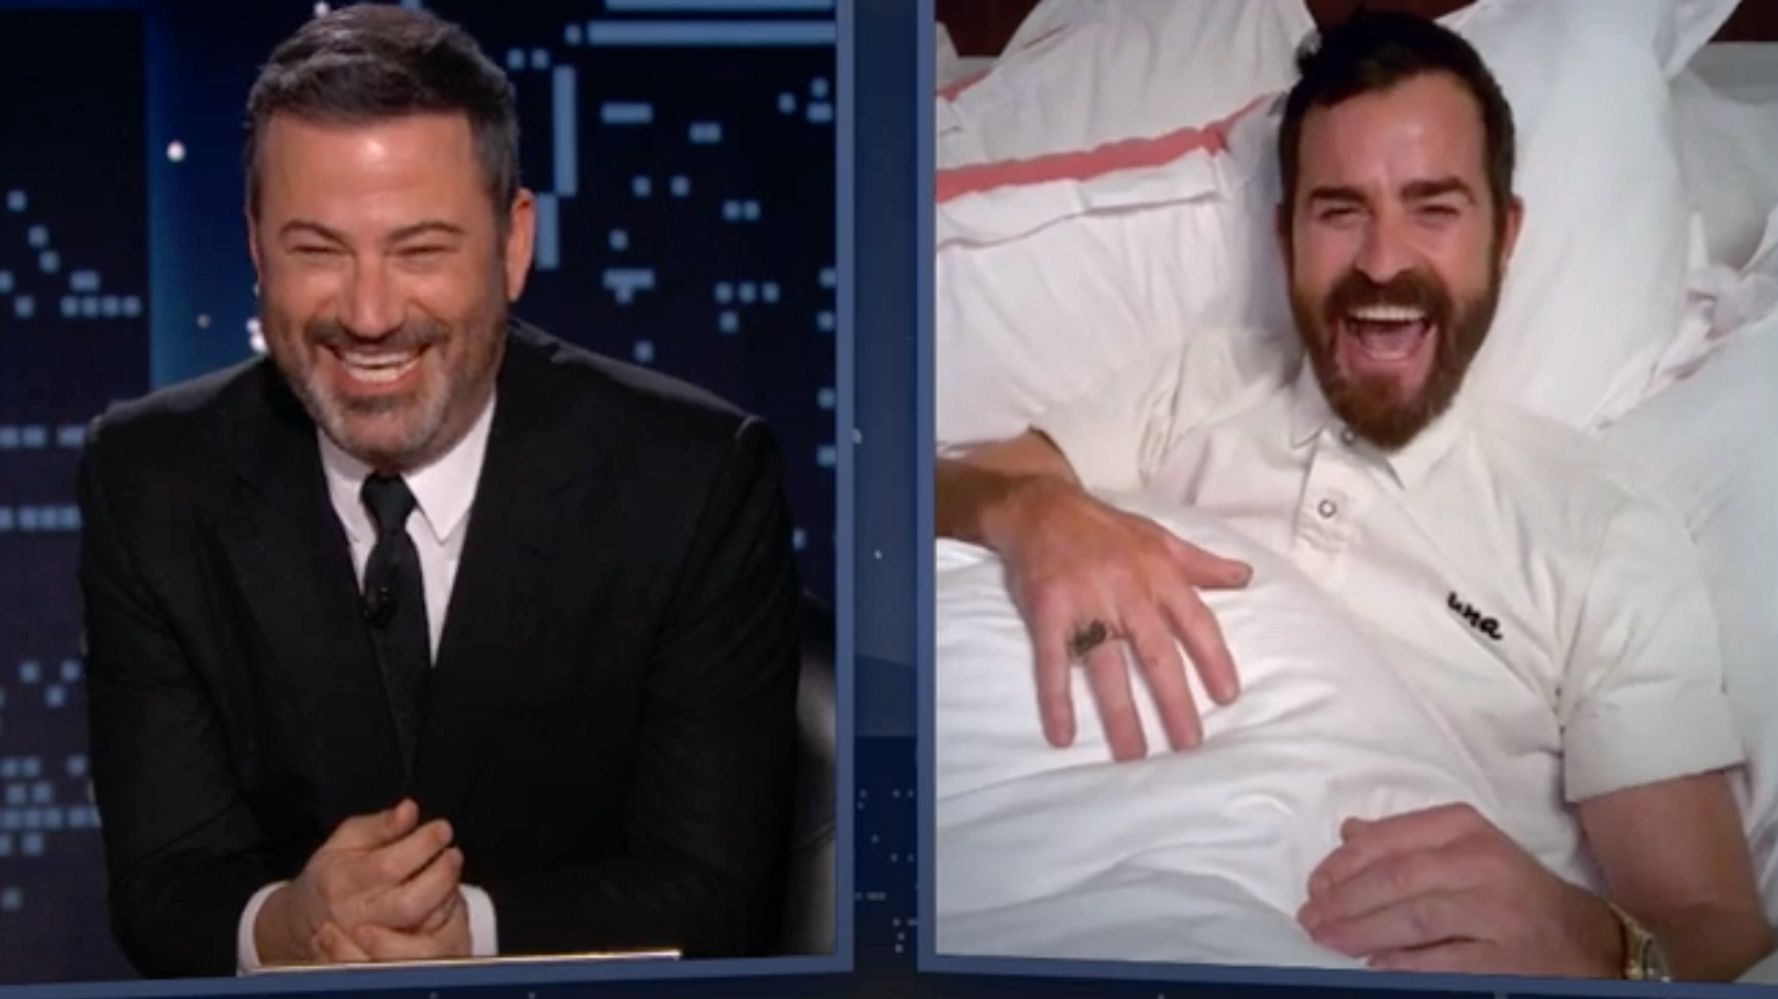 Justin Theroux Reveals The Prank He Pulled On Jimmy Kimmel Every Day For 5 Months